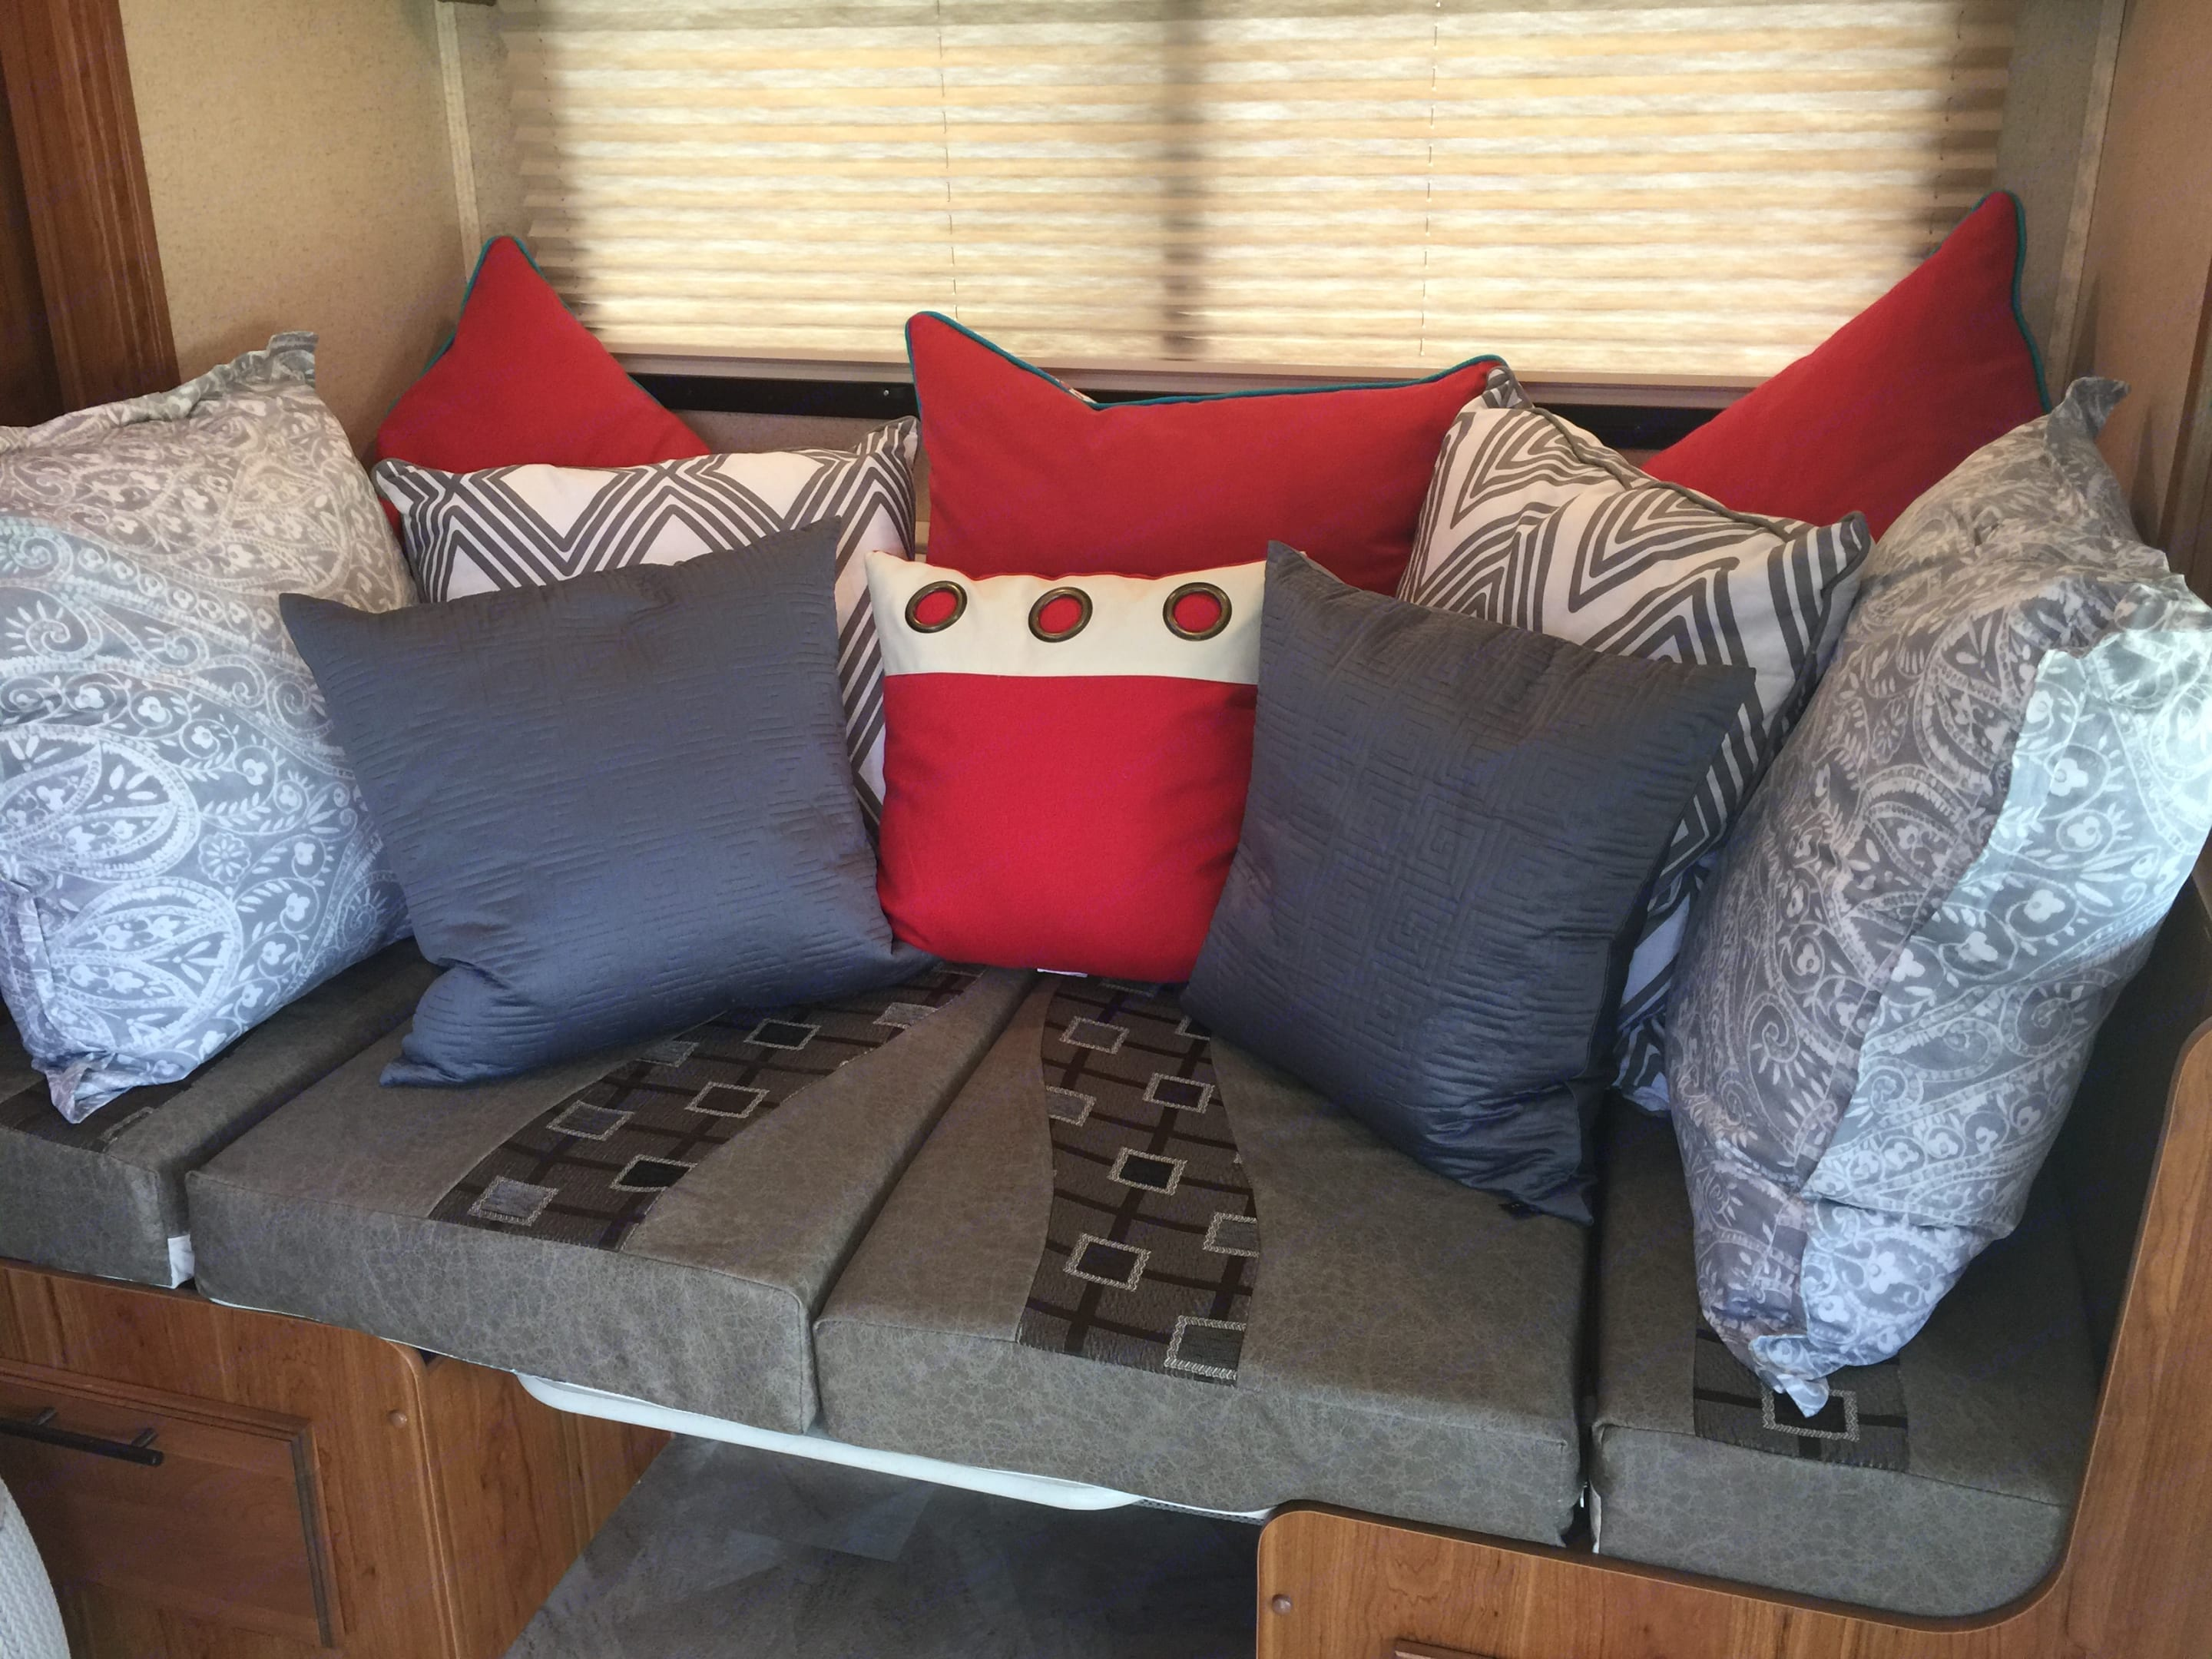 Another view of the couch. Jayco Melbourne 2017